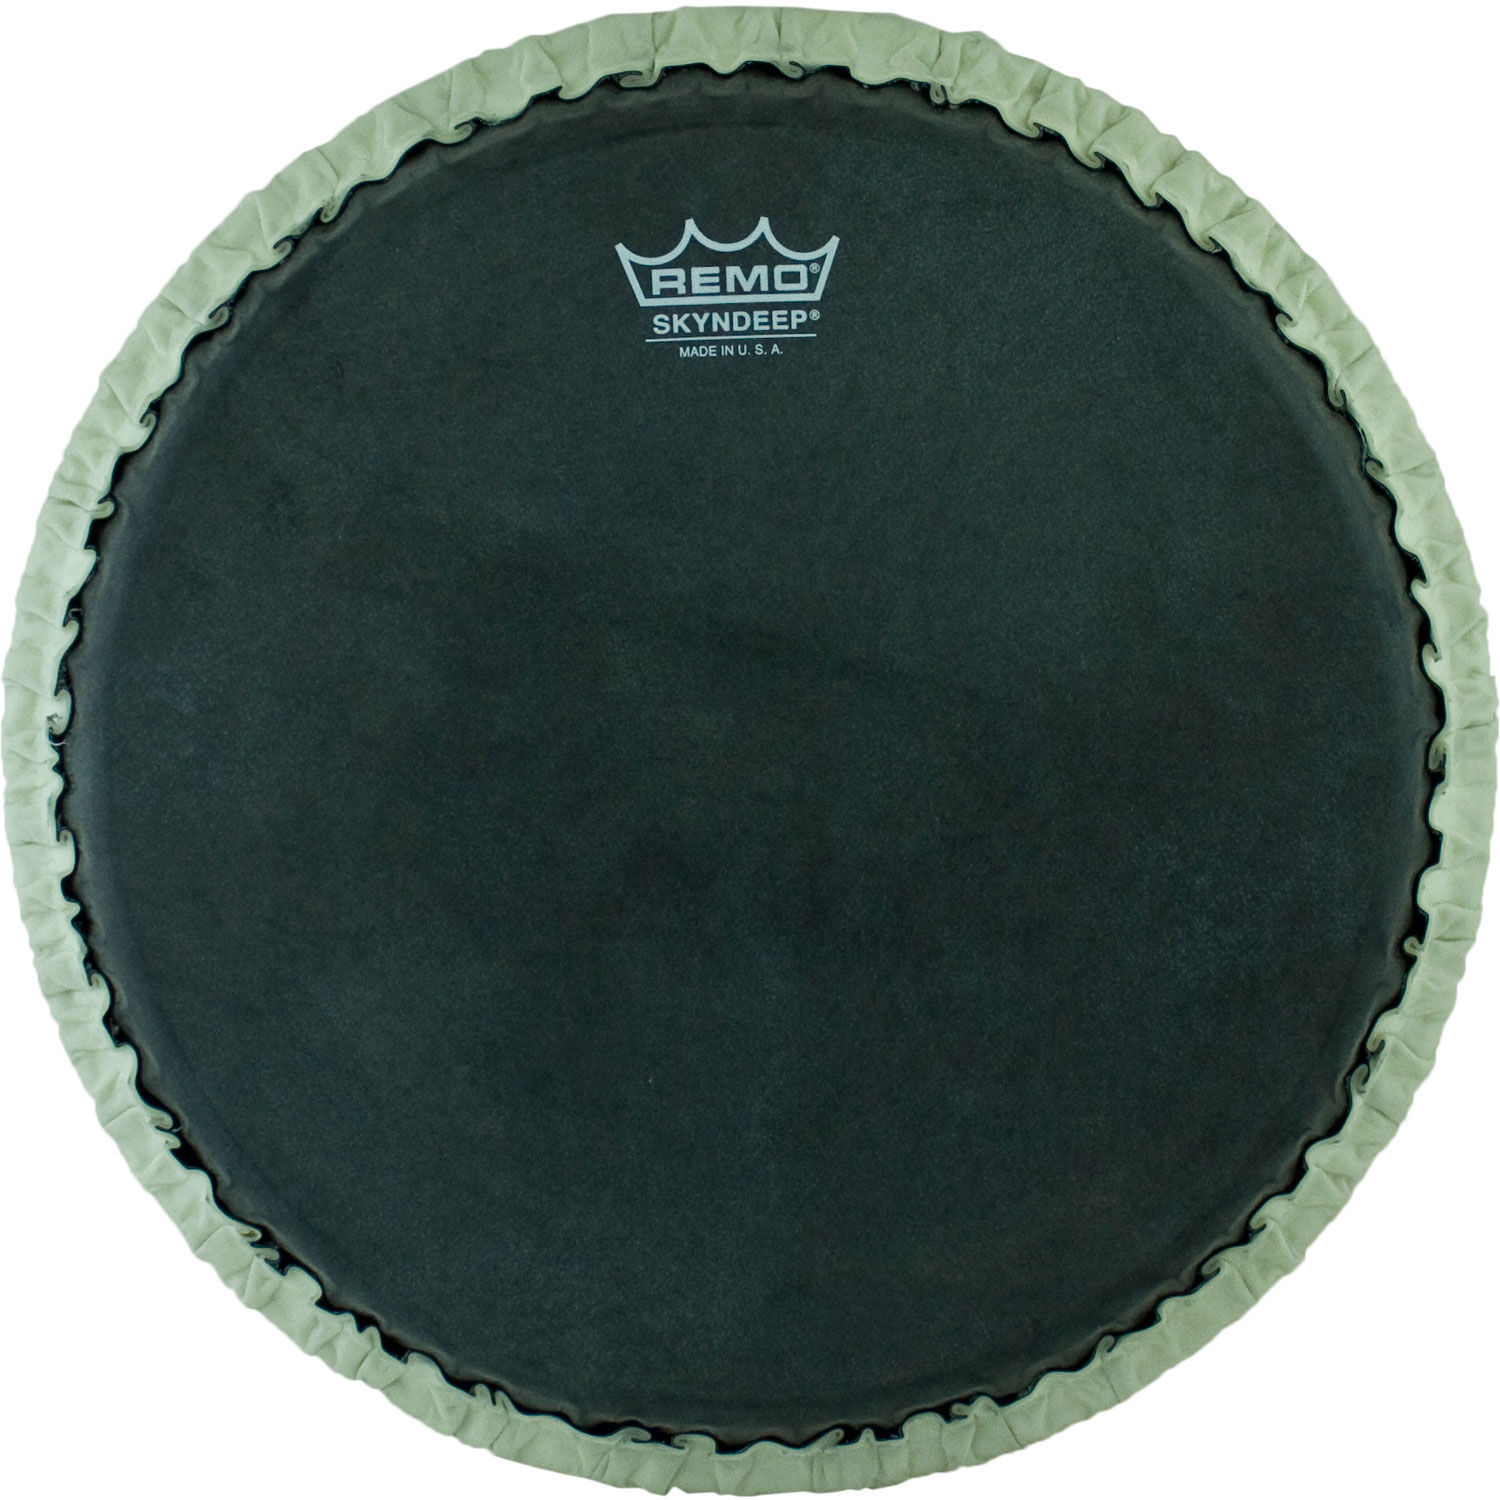 "Remo 12.5"" Tucked Skyndeep Conga Drum Head with Black Calfskin Graphic"